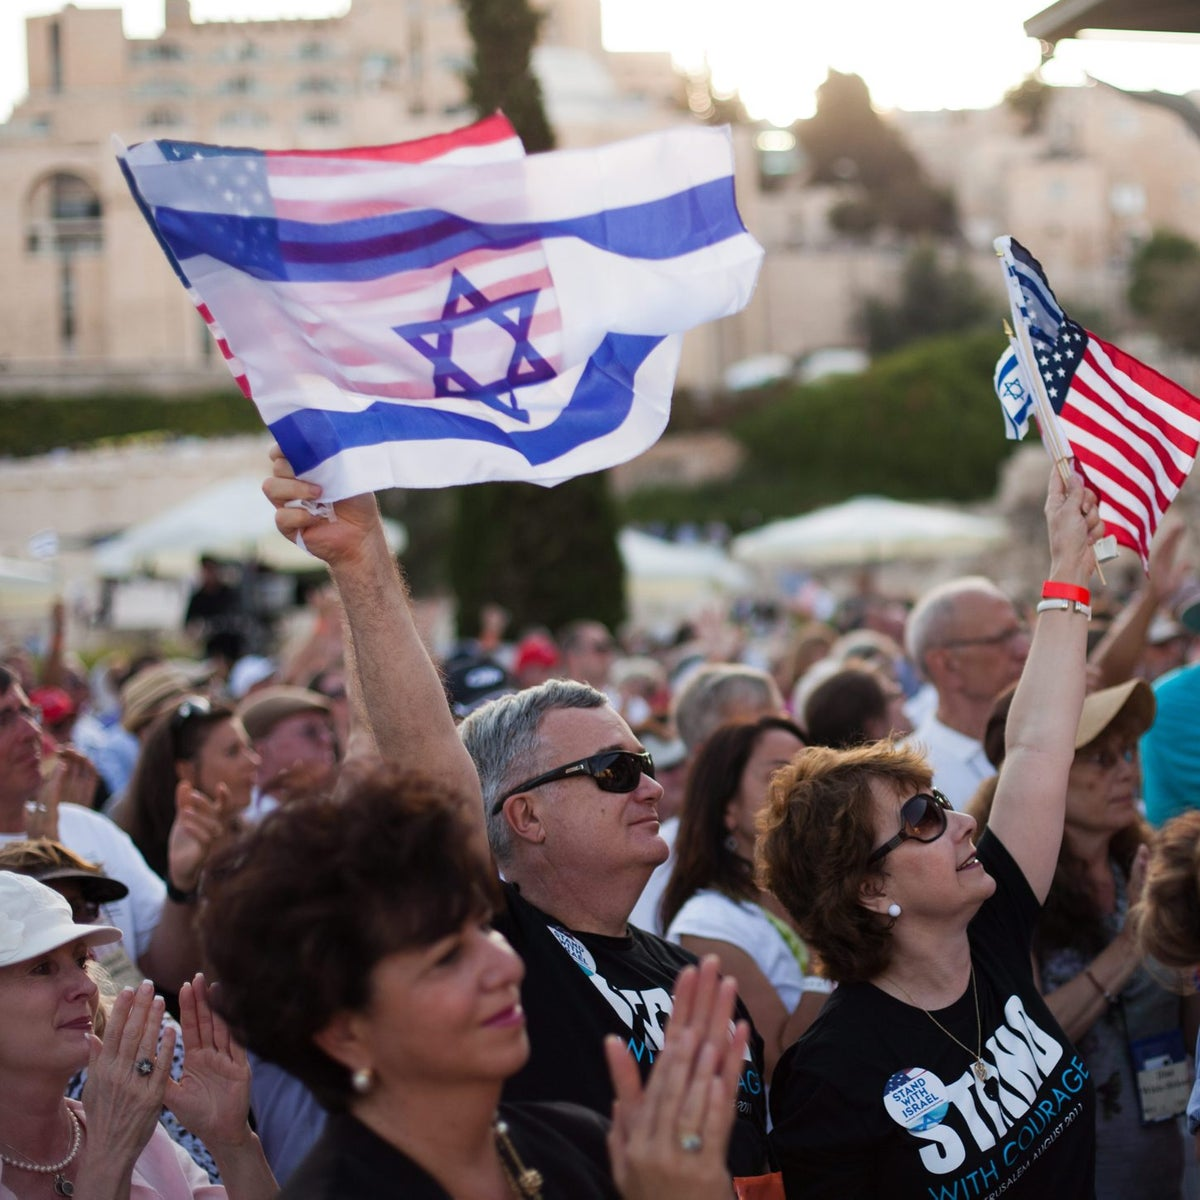 Israelis and Americans at a gathering overlooking the Western Wall and Temple Mount, 2011.